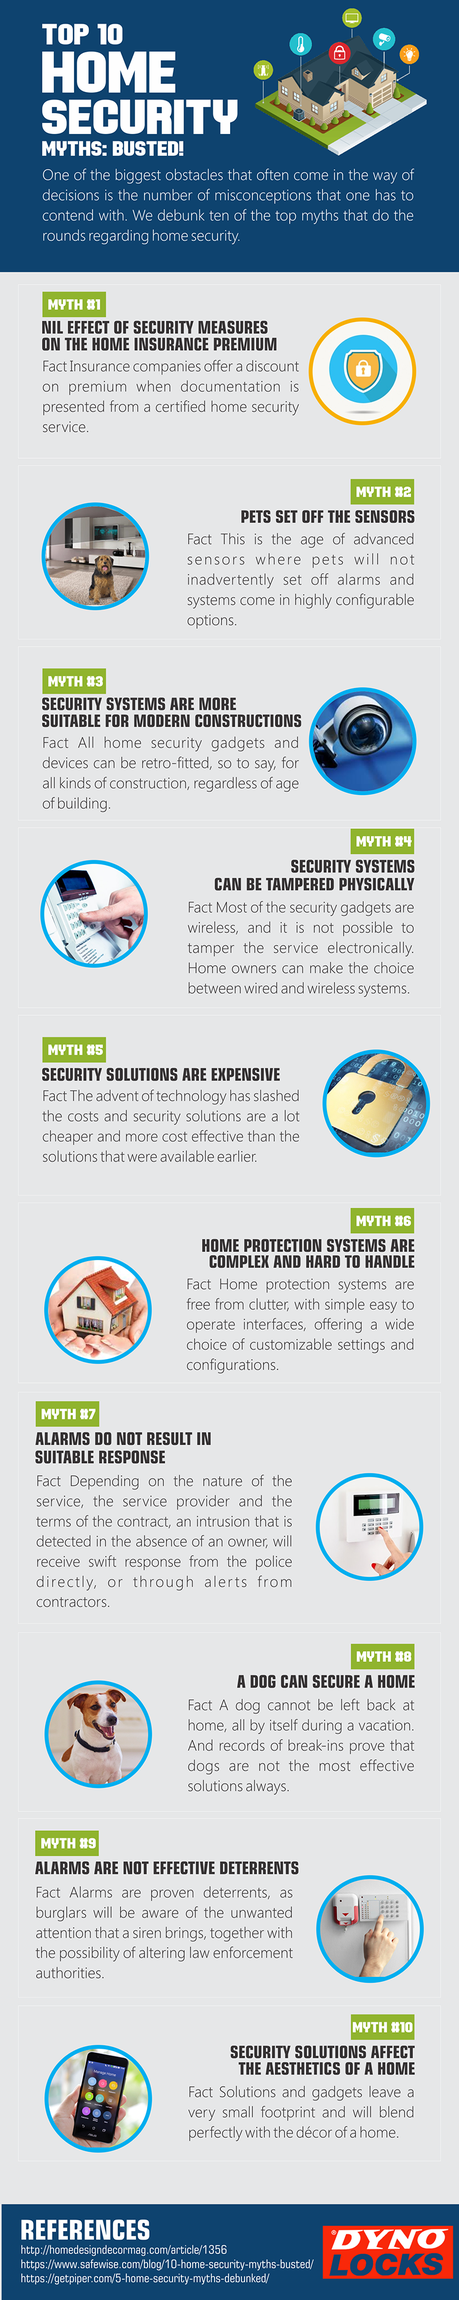 Top 10 Home Security Myths Busted: Busted!